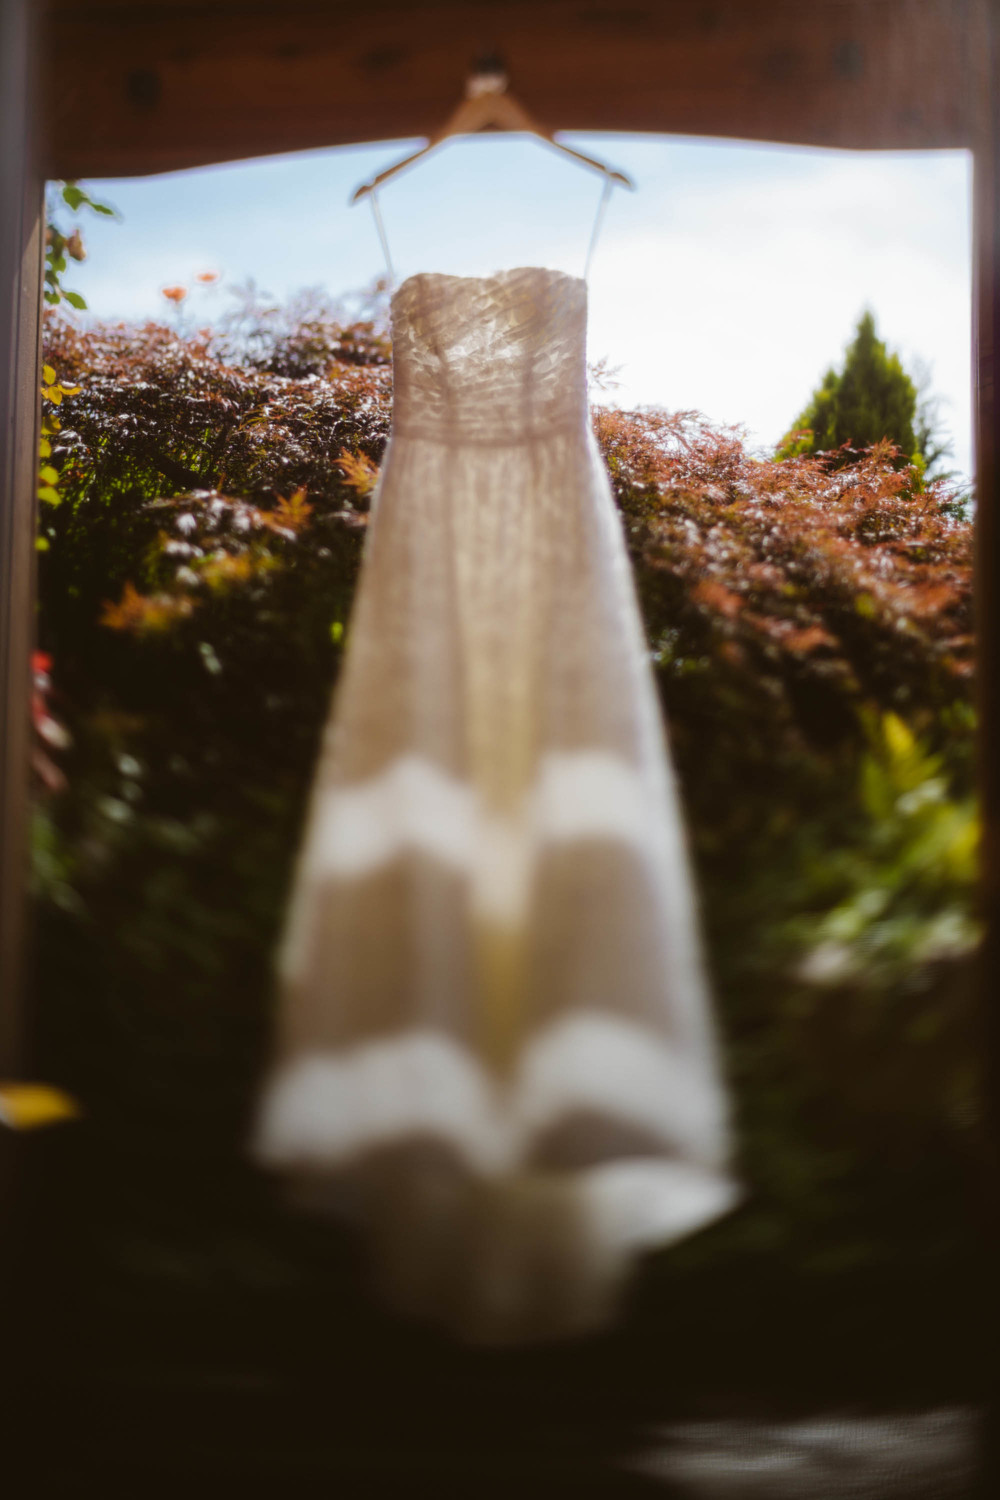 Freelensing the dress.